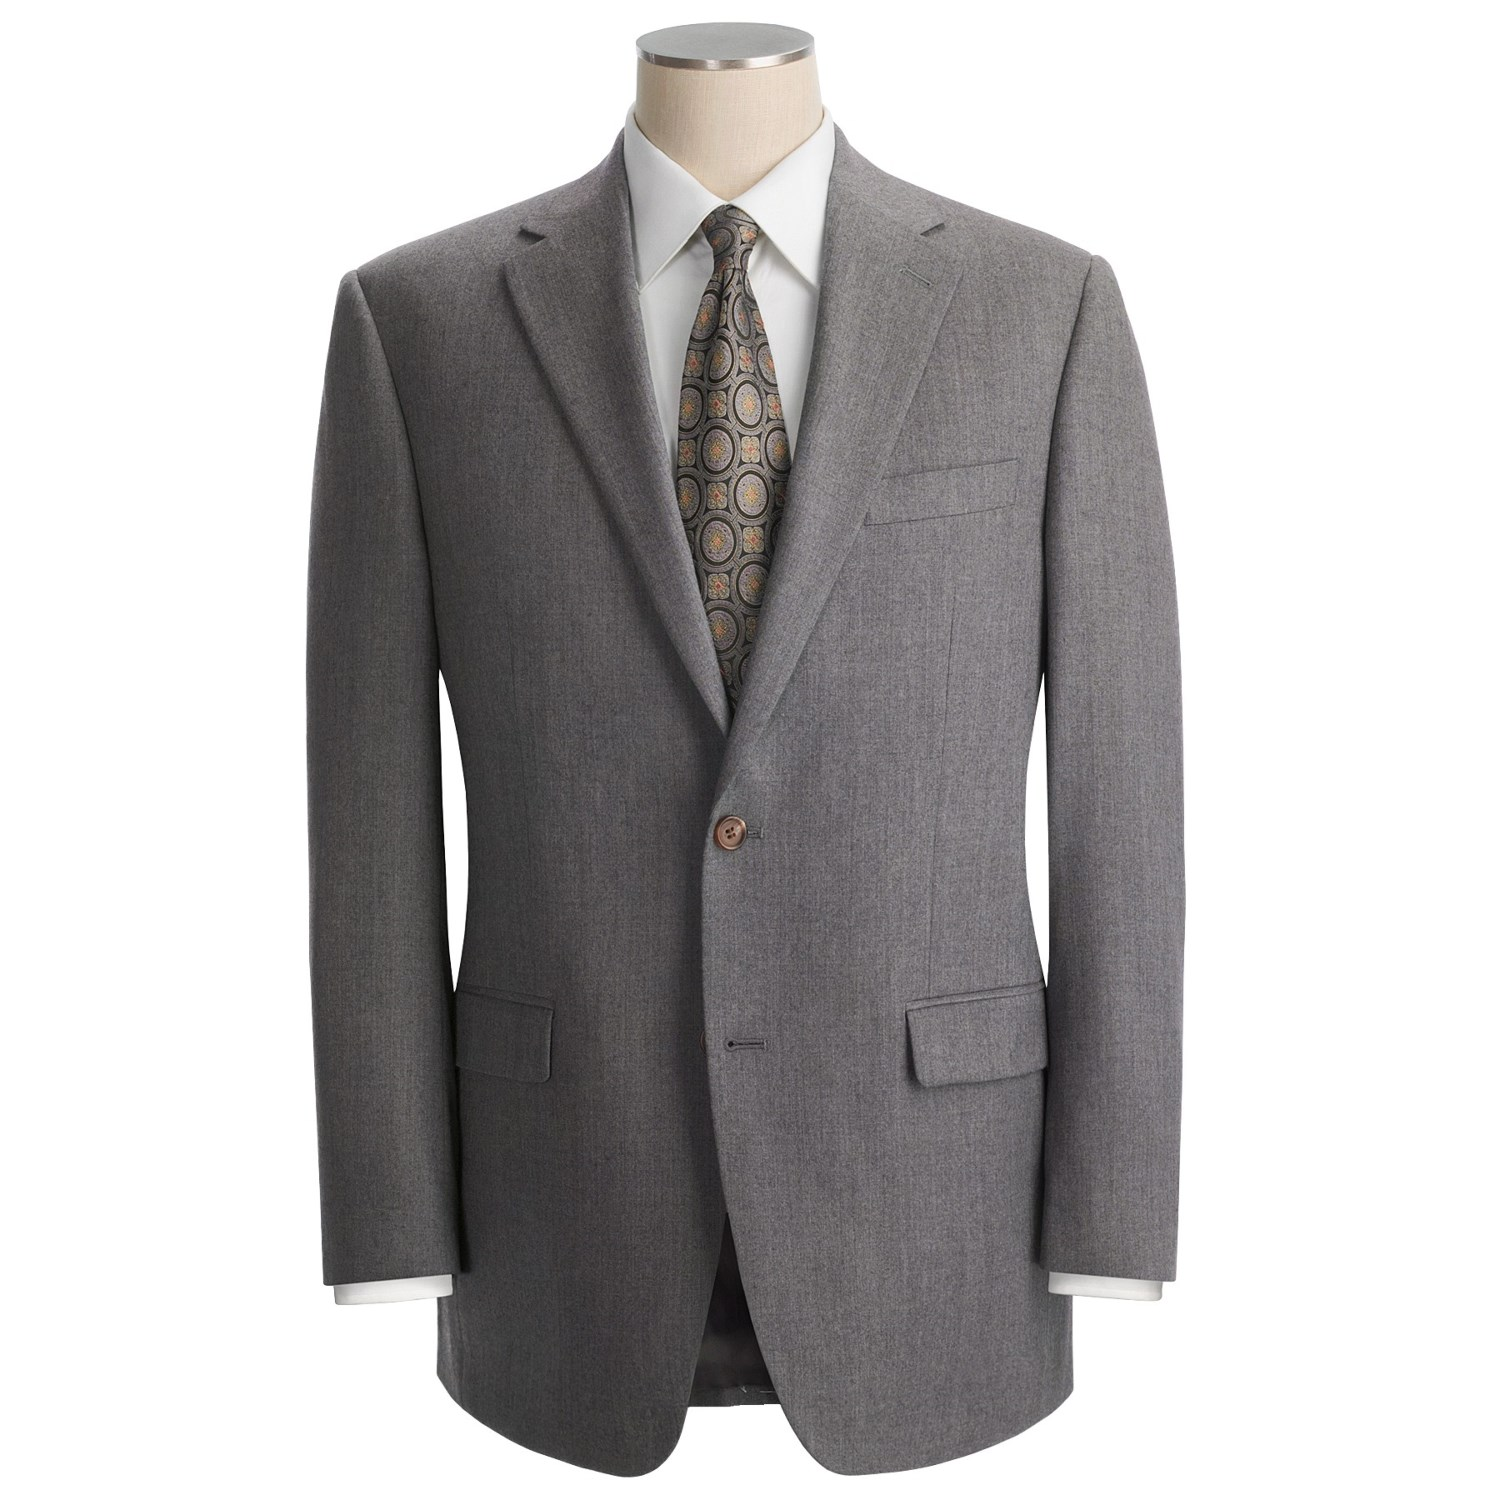 Find great deals on eBay for mens flannel suit. Shop with confidence.